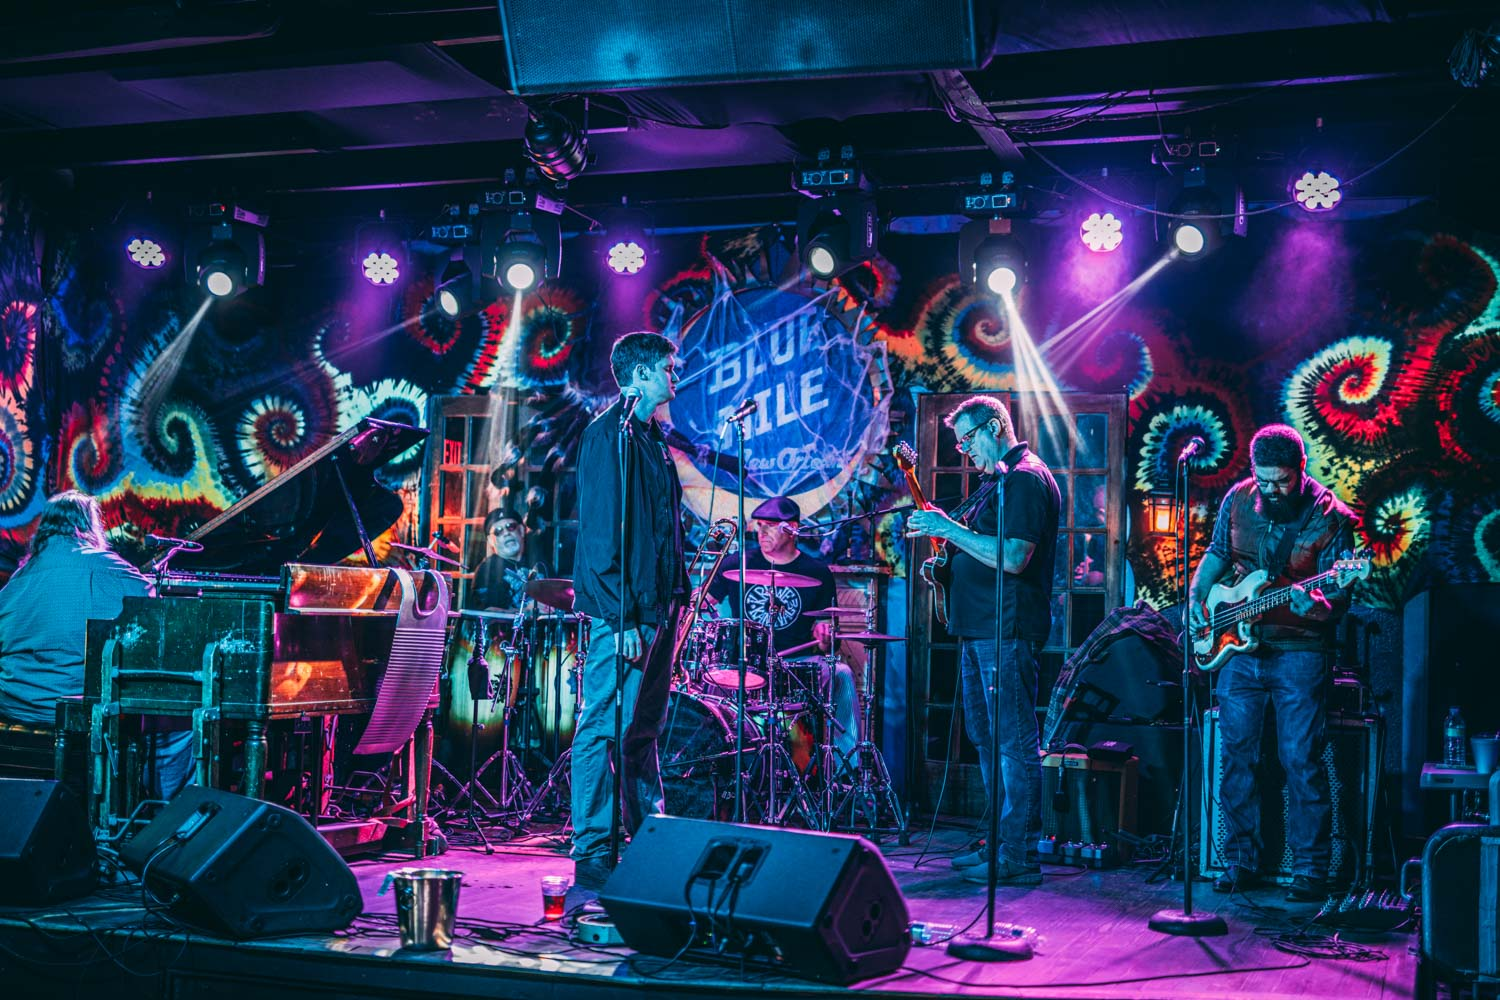 Blue NIle - 2 Days in New Orleans